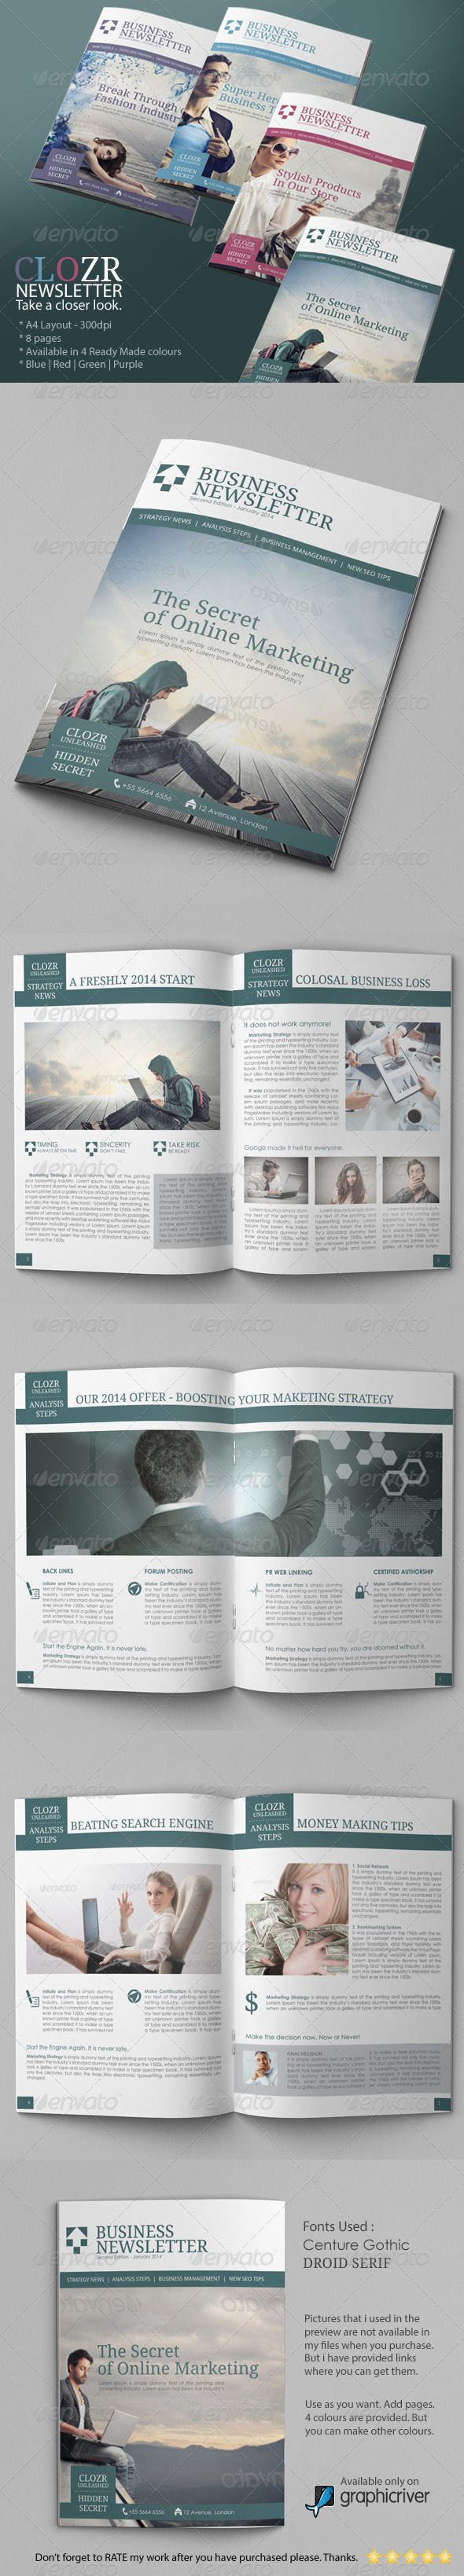 Best Newsletter Examples Adobe Photoshop Images On